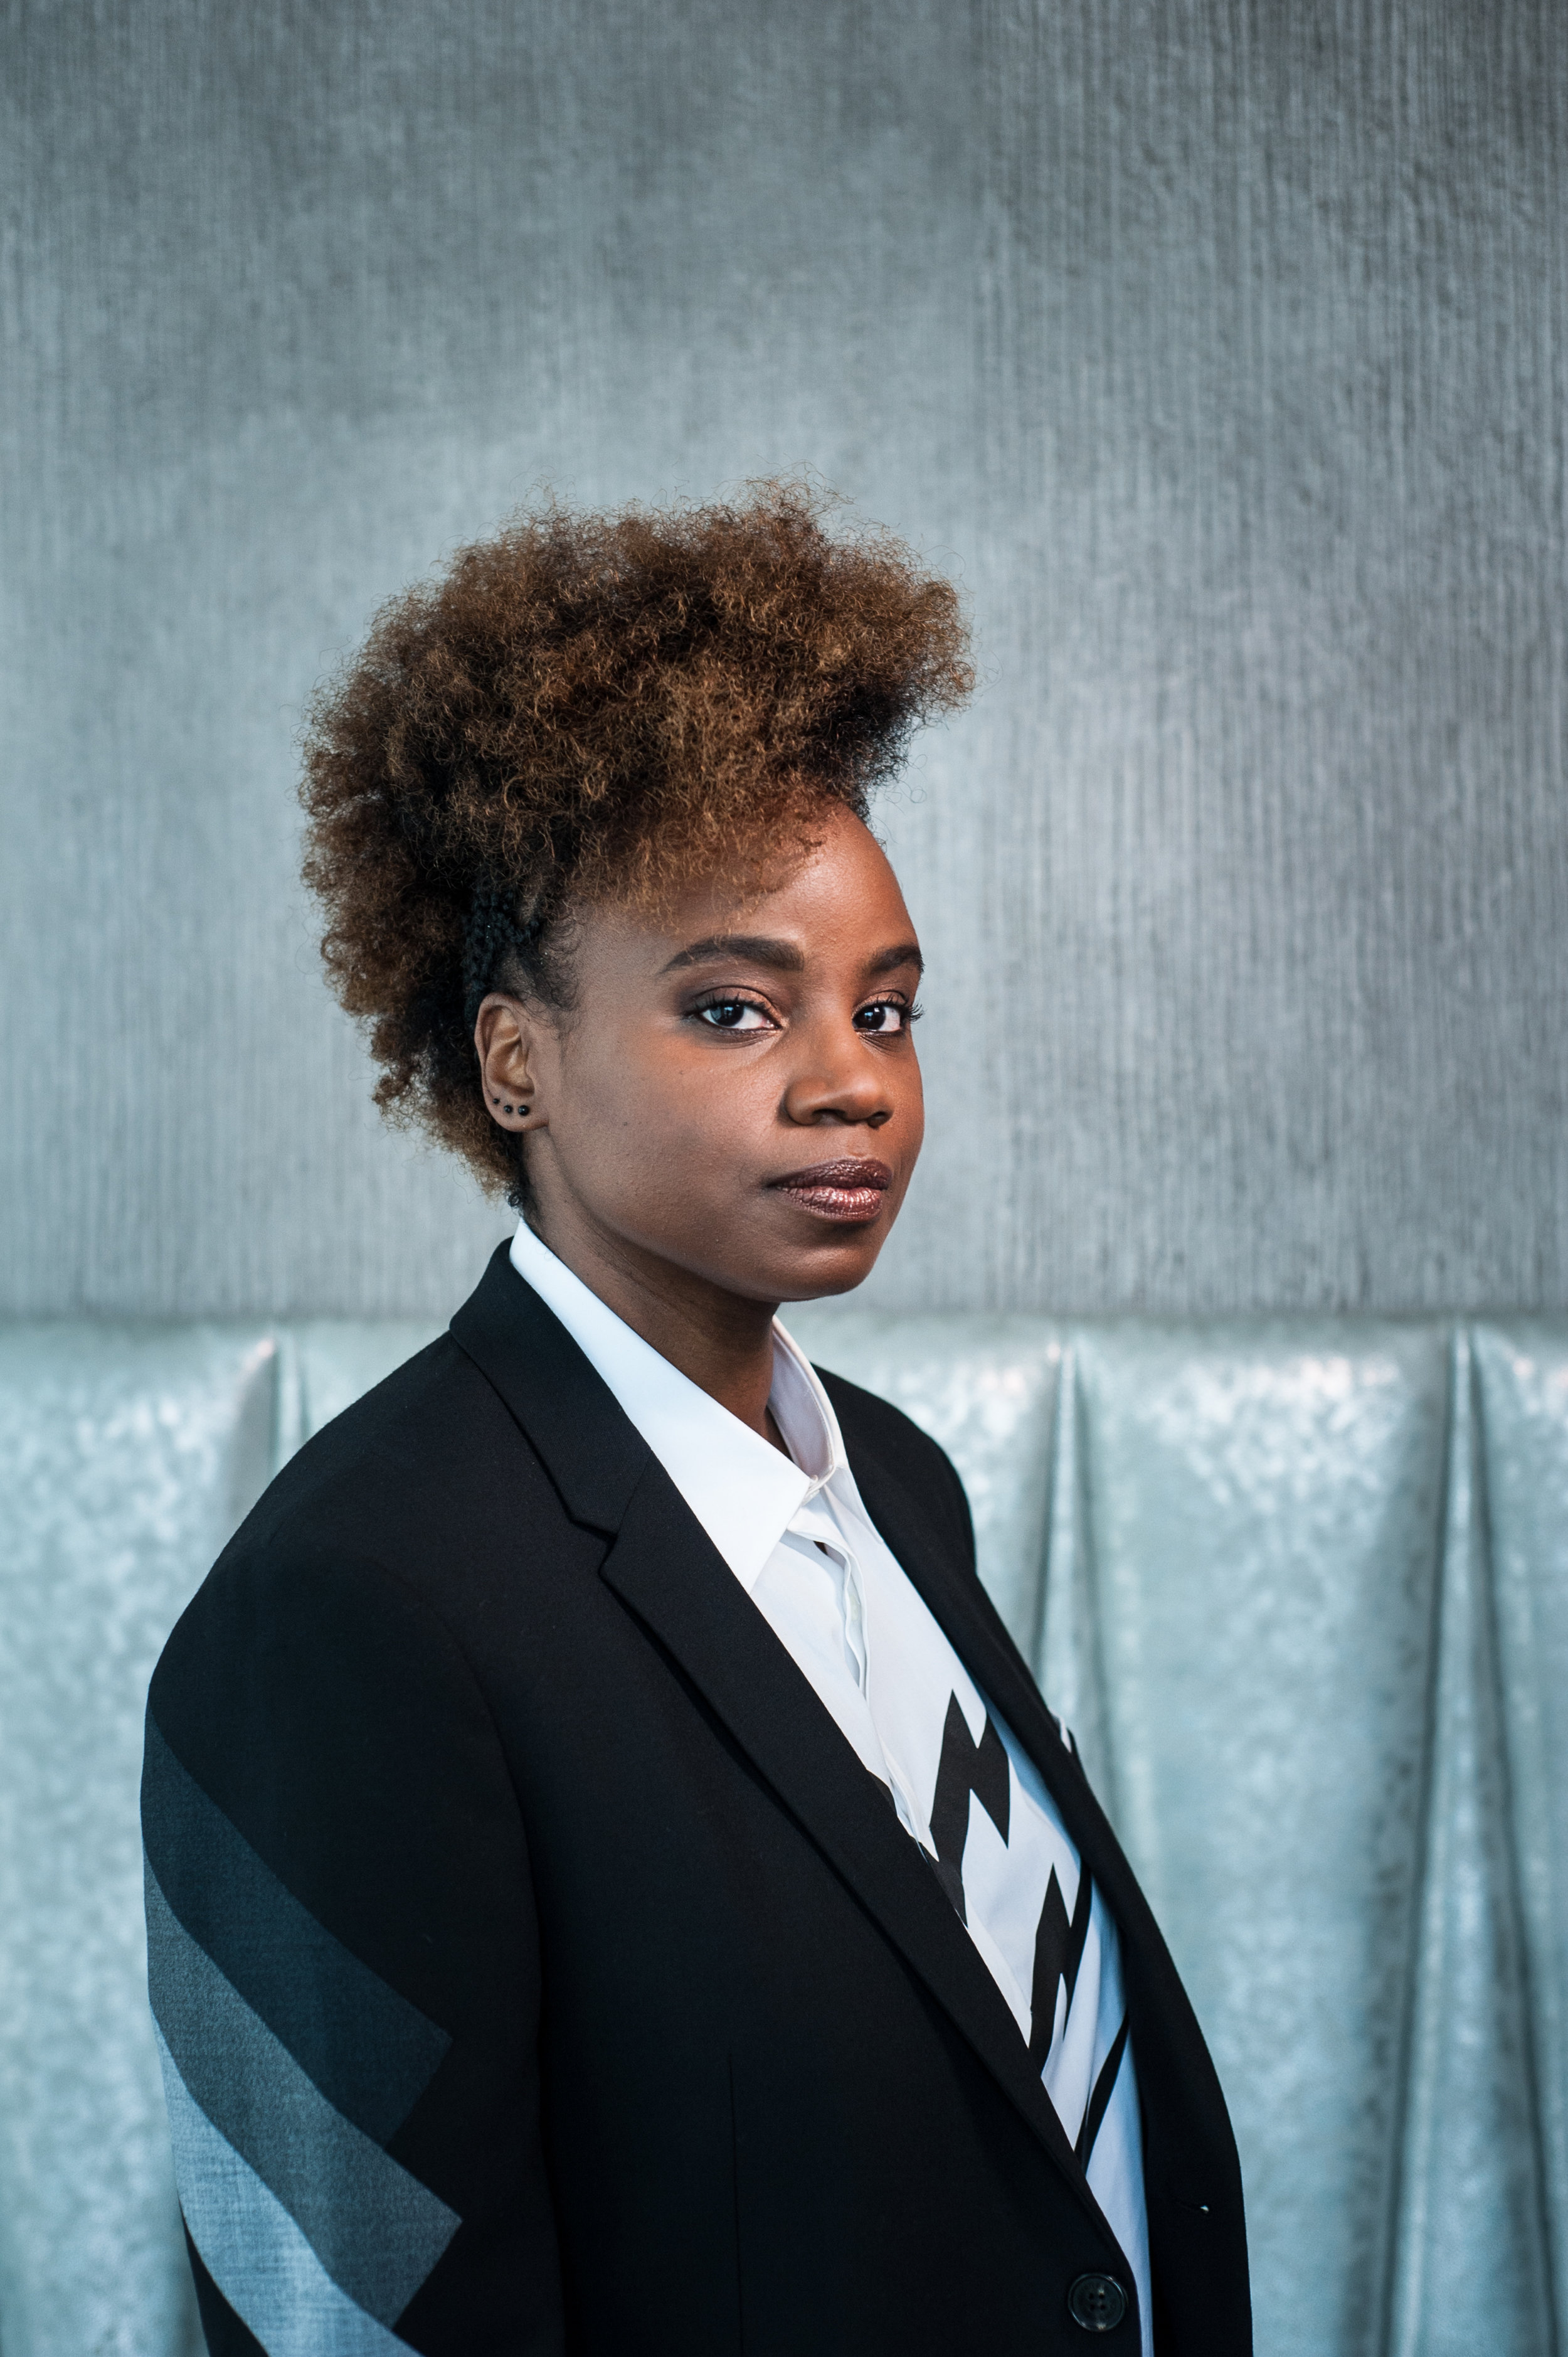 Mudbound director Dee Rees in New York City October 2017. Photographed for ESPN's The Undefeated